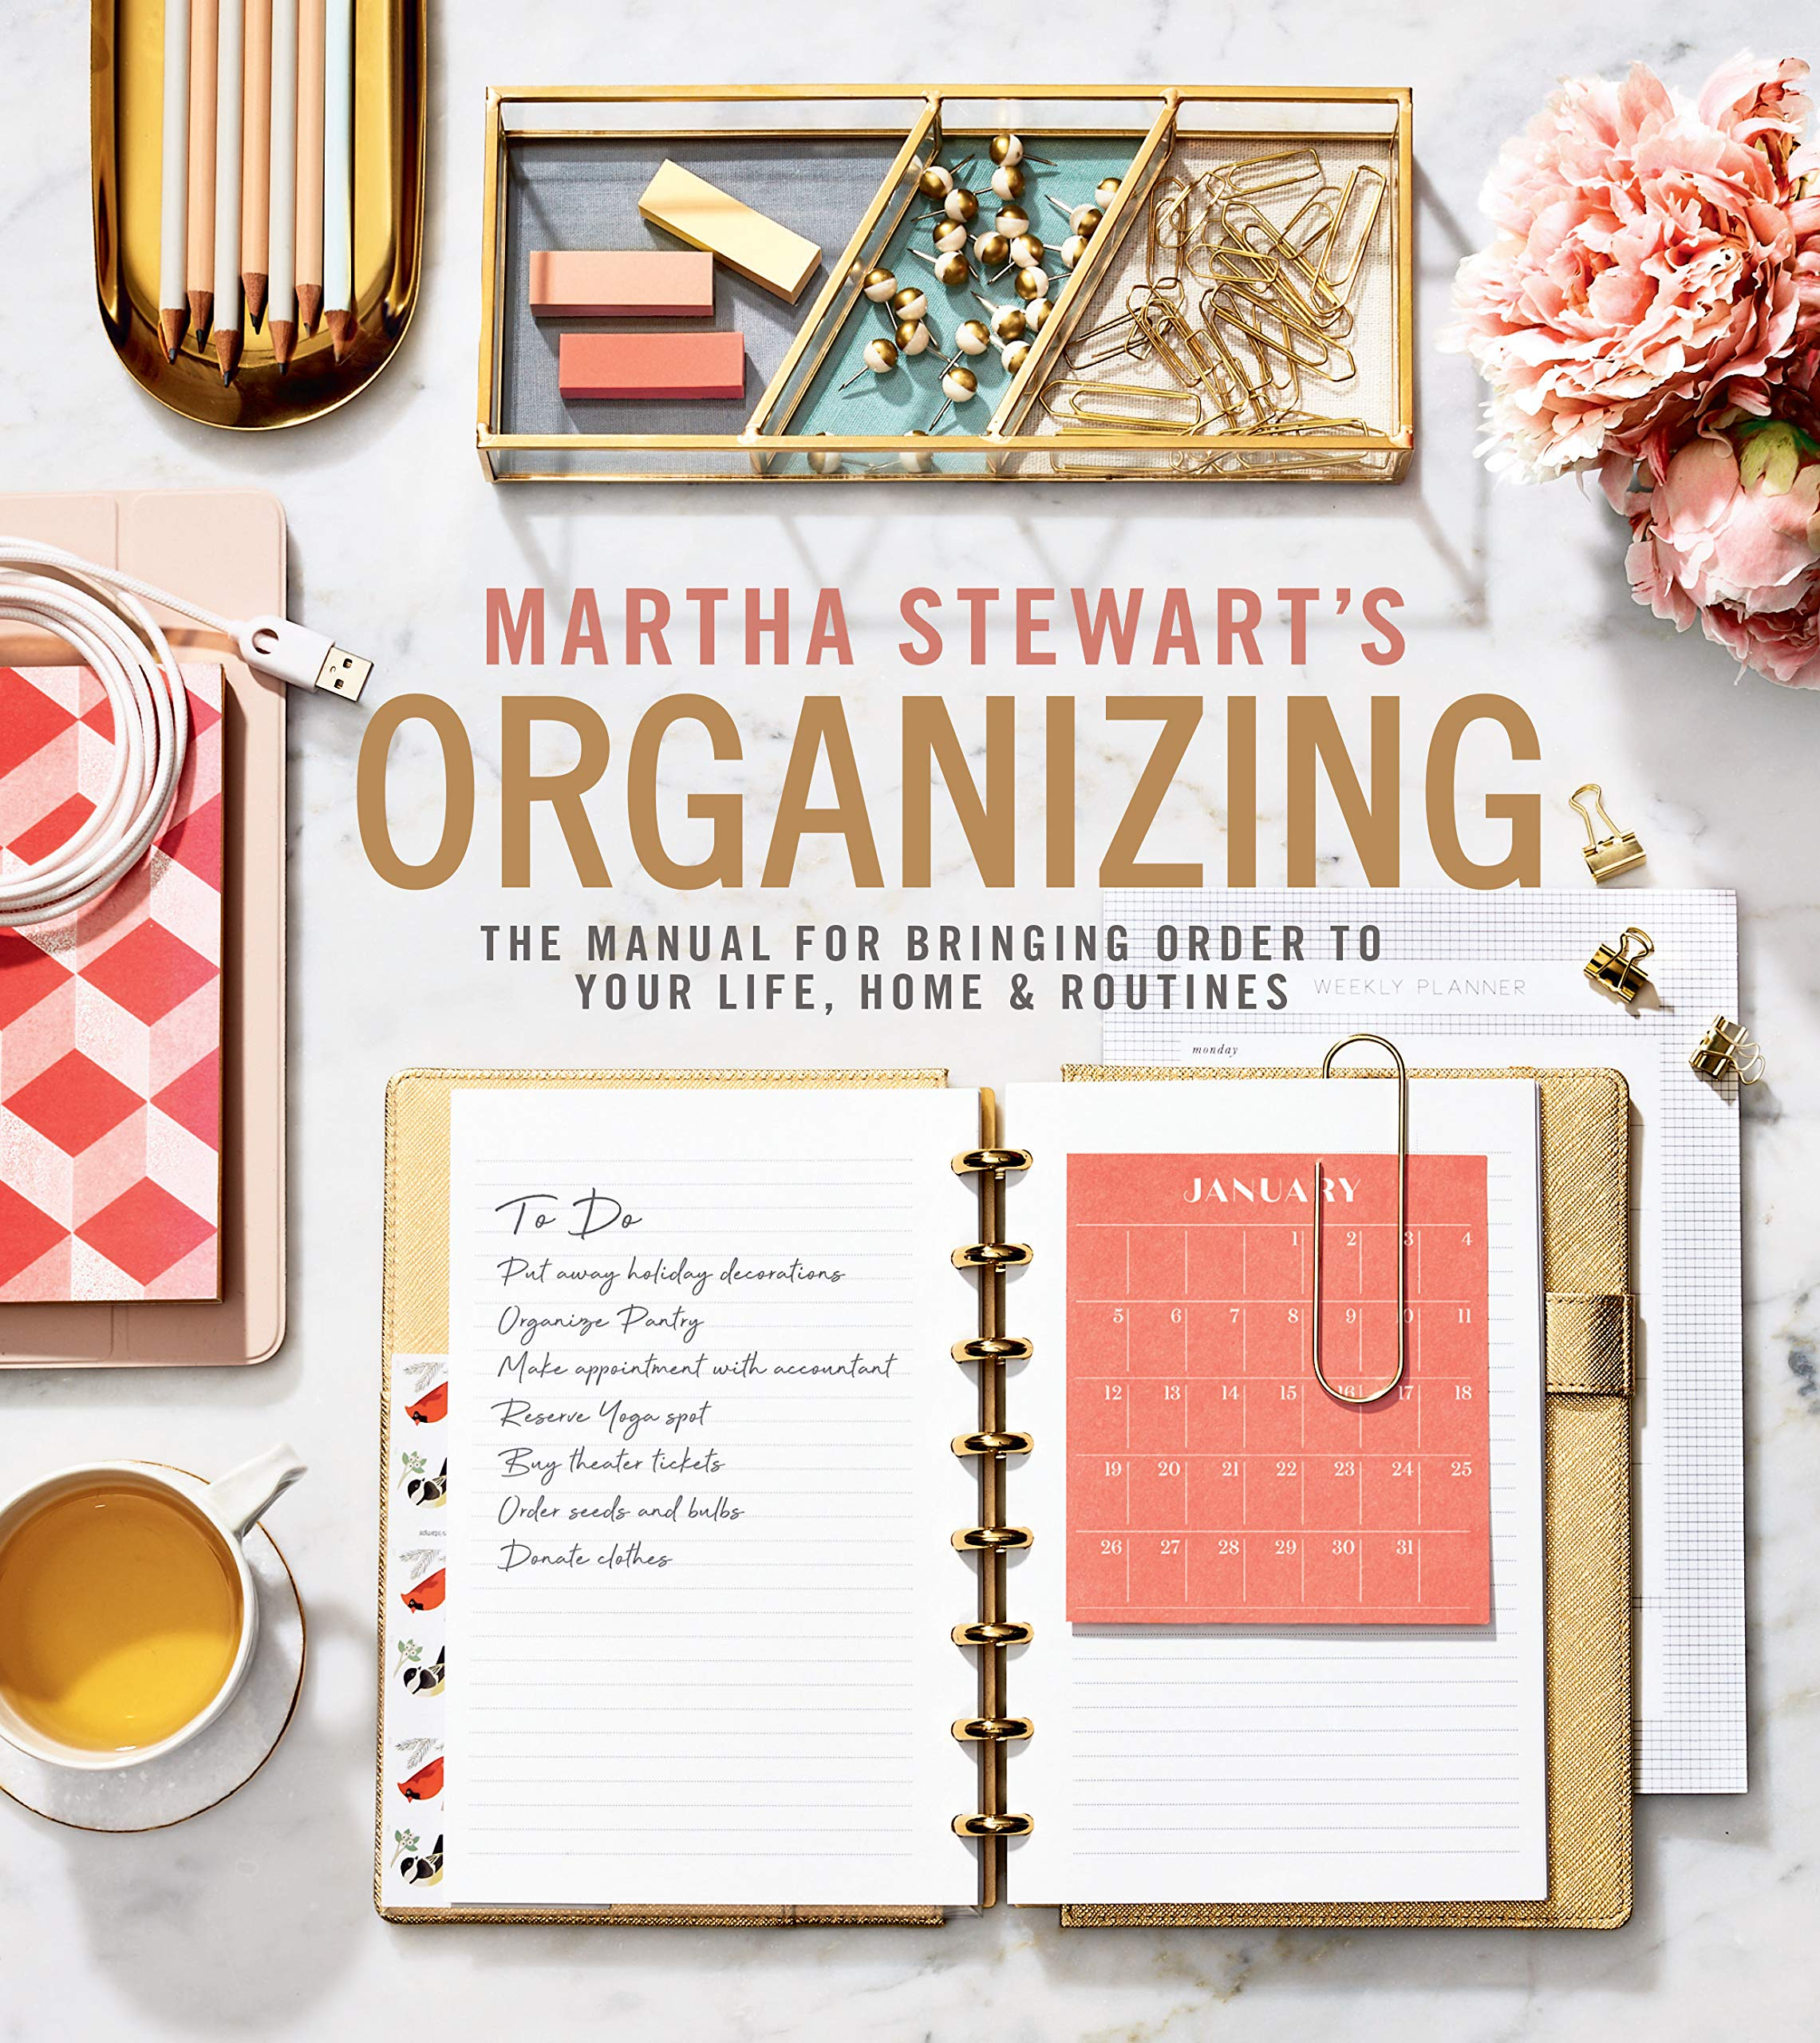 The Manual for Bringing Order to Your Life, Home & Routines